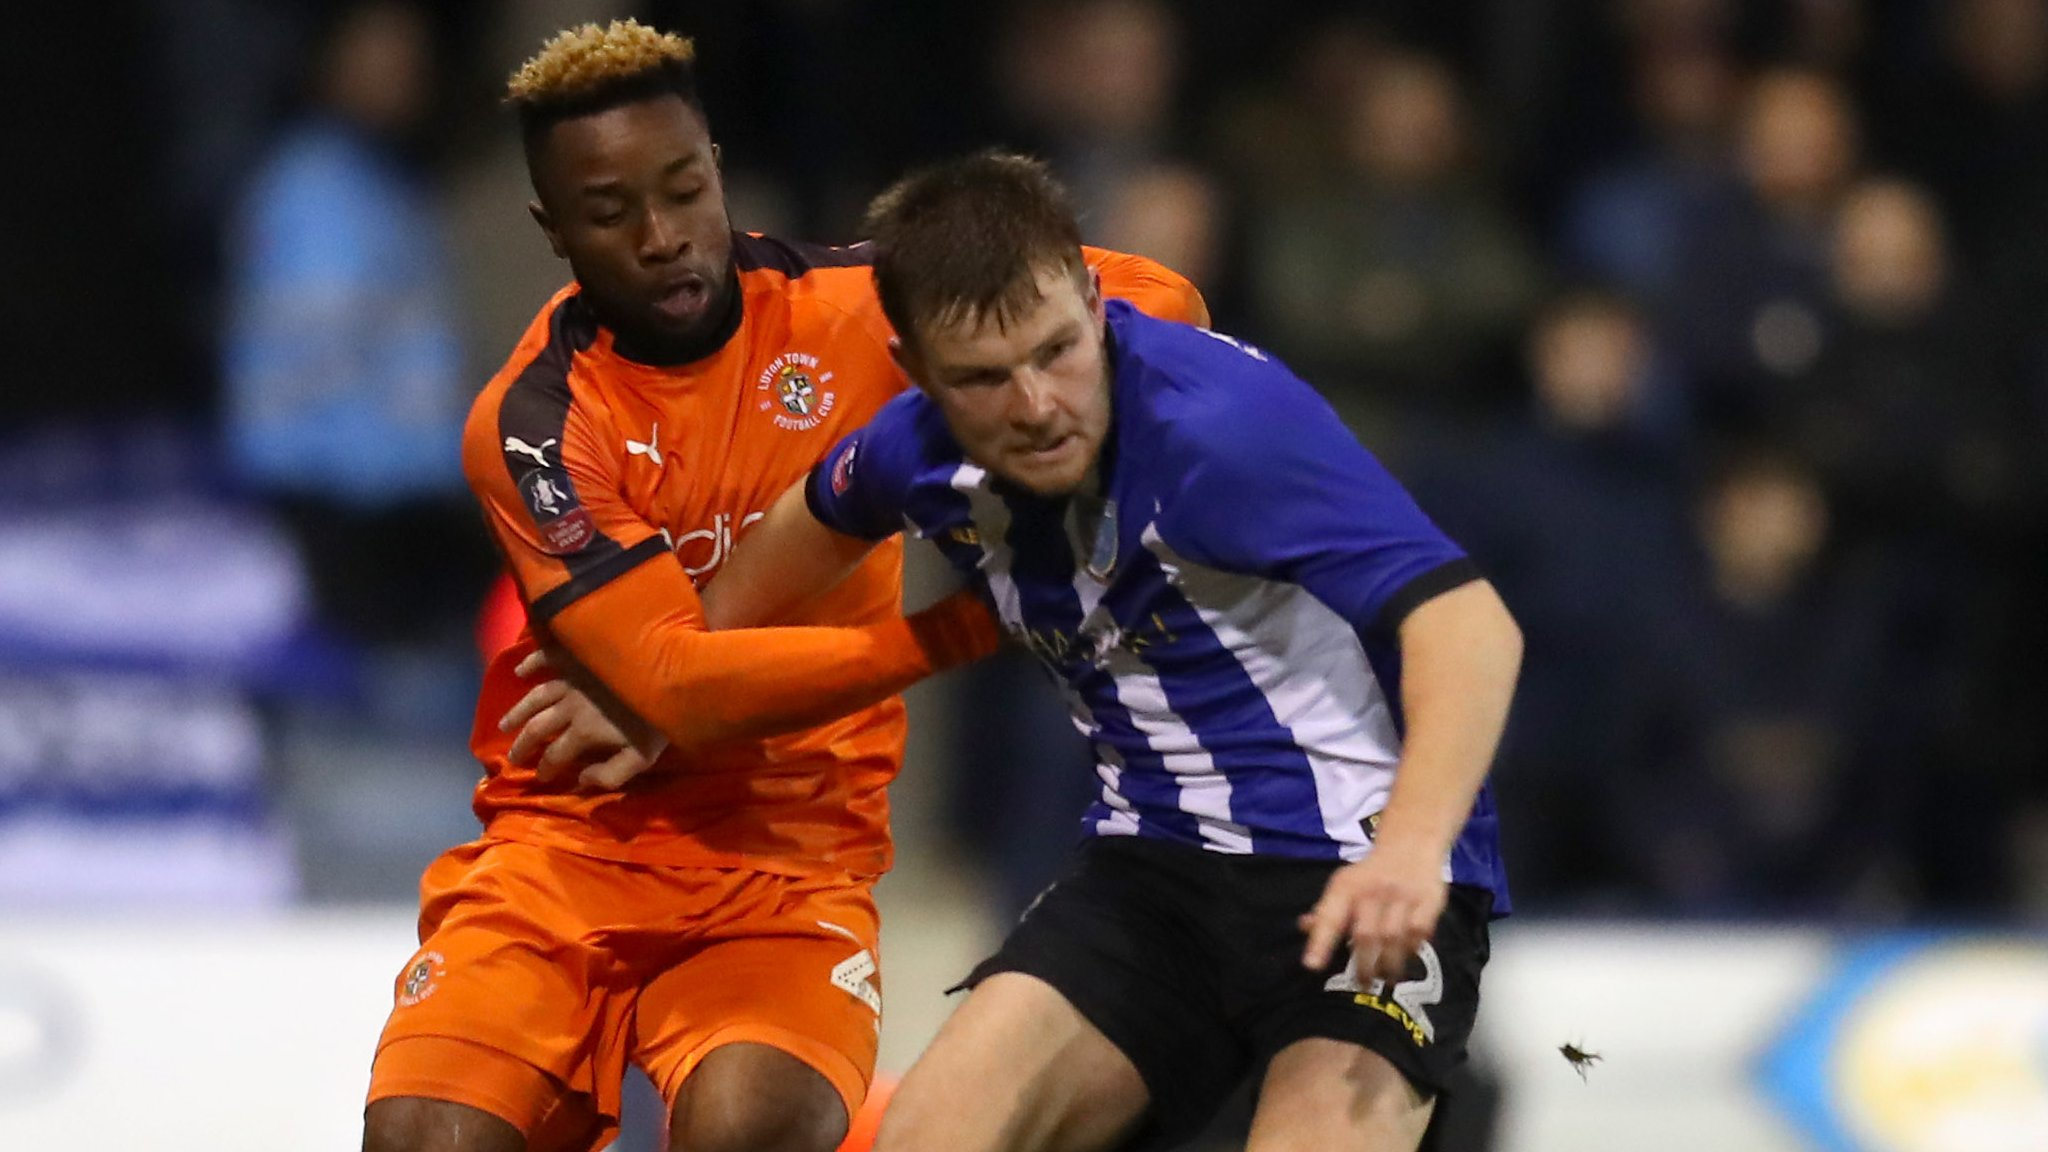 Luton Town 0-1 Sheffield Wednesday: Championship side book a fourth round tie at Chelsea